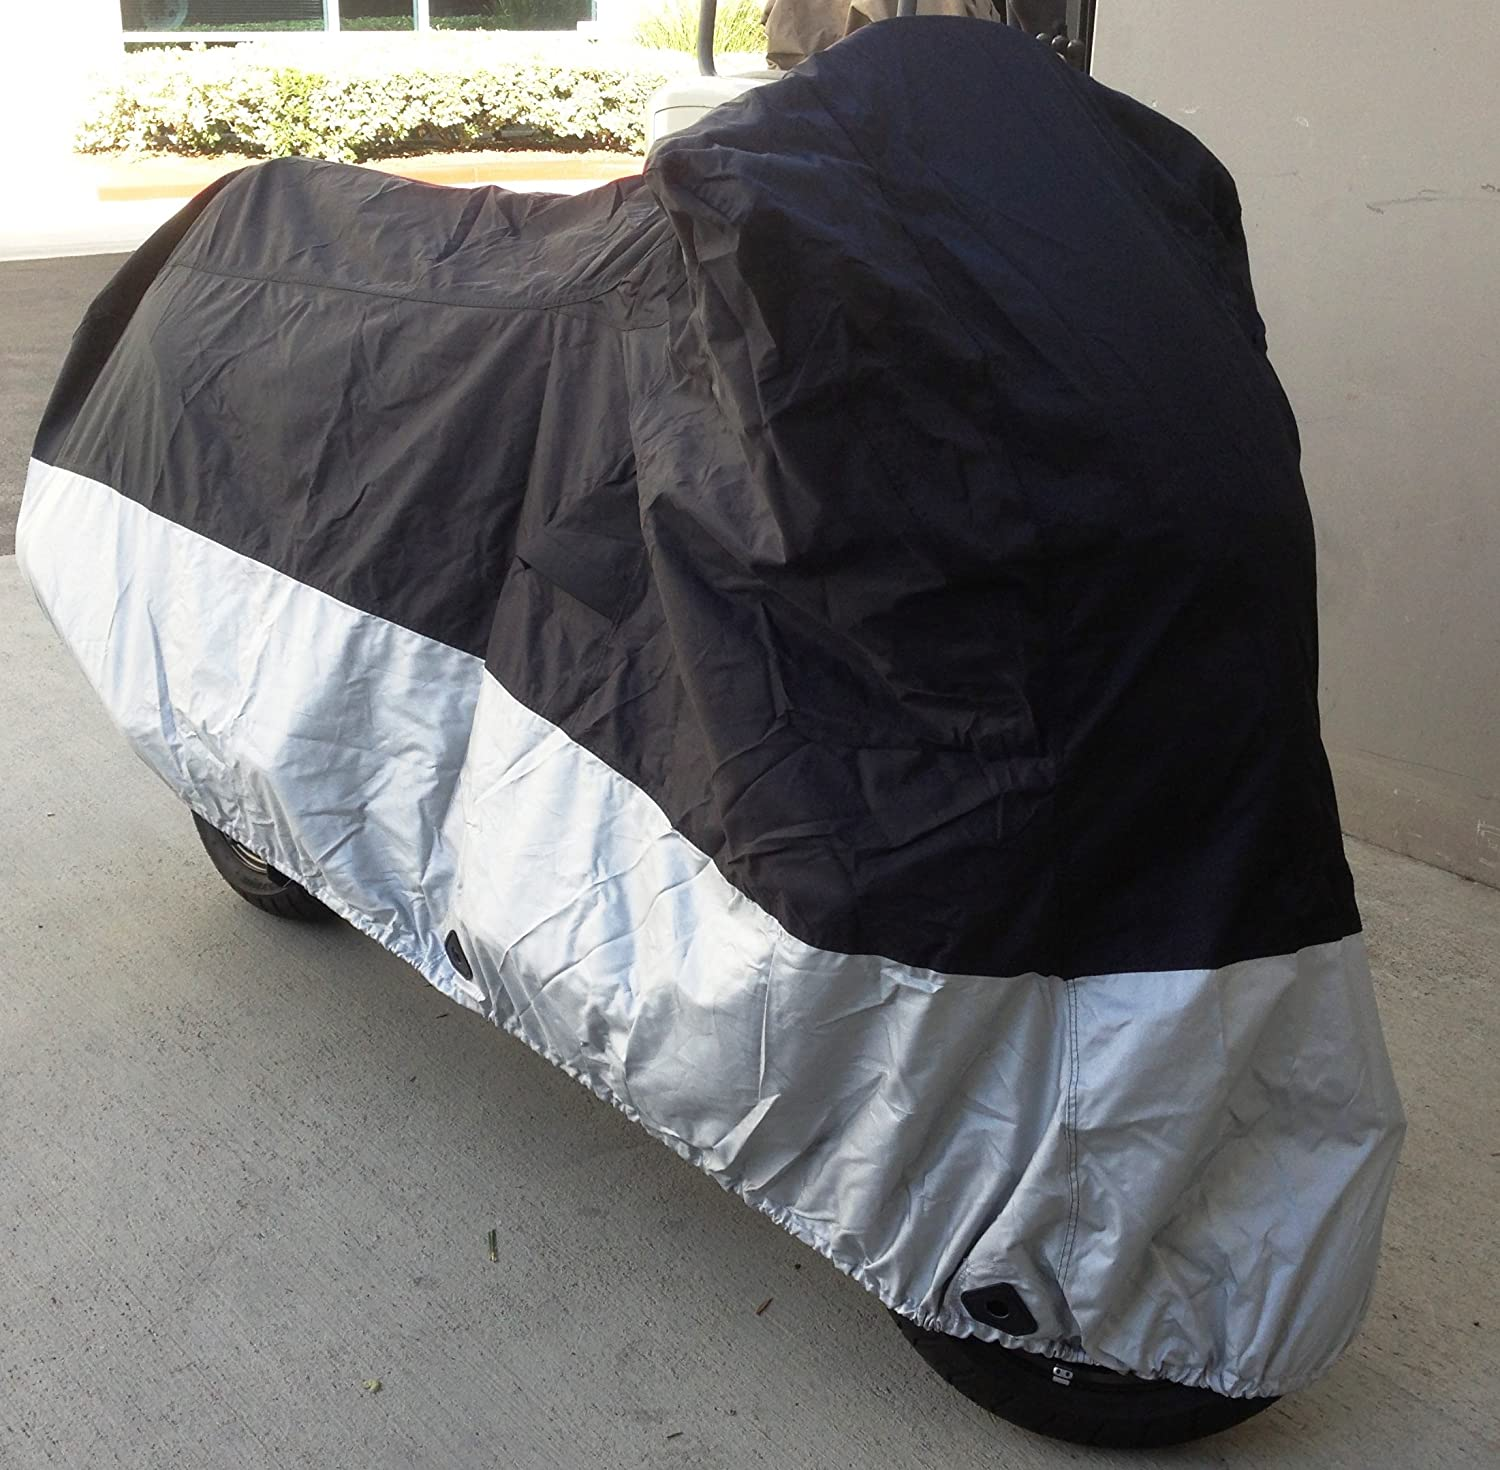 Heavy Duty Motorcycle Cover Xl With Cable Lock Fits 1983 Honda Shadow Bagger Up To 94 Length Medium Cruiser Large Sport Bike Automotive